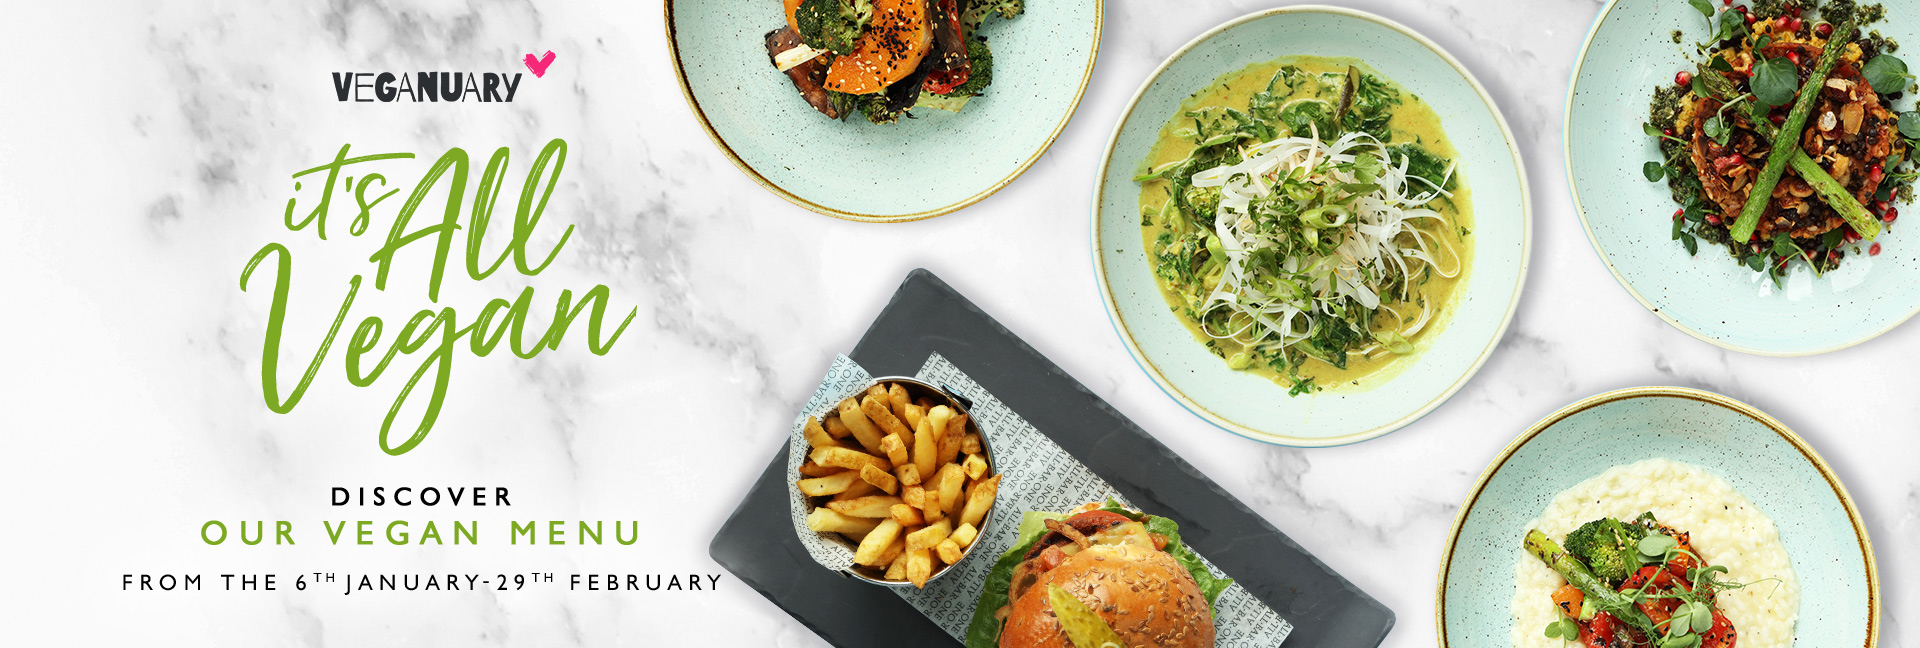 Veganuary Menu at All Bar One St Pauls